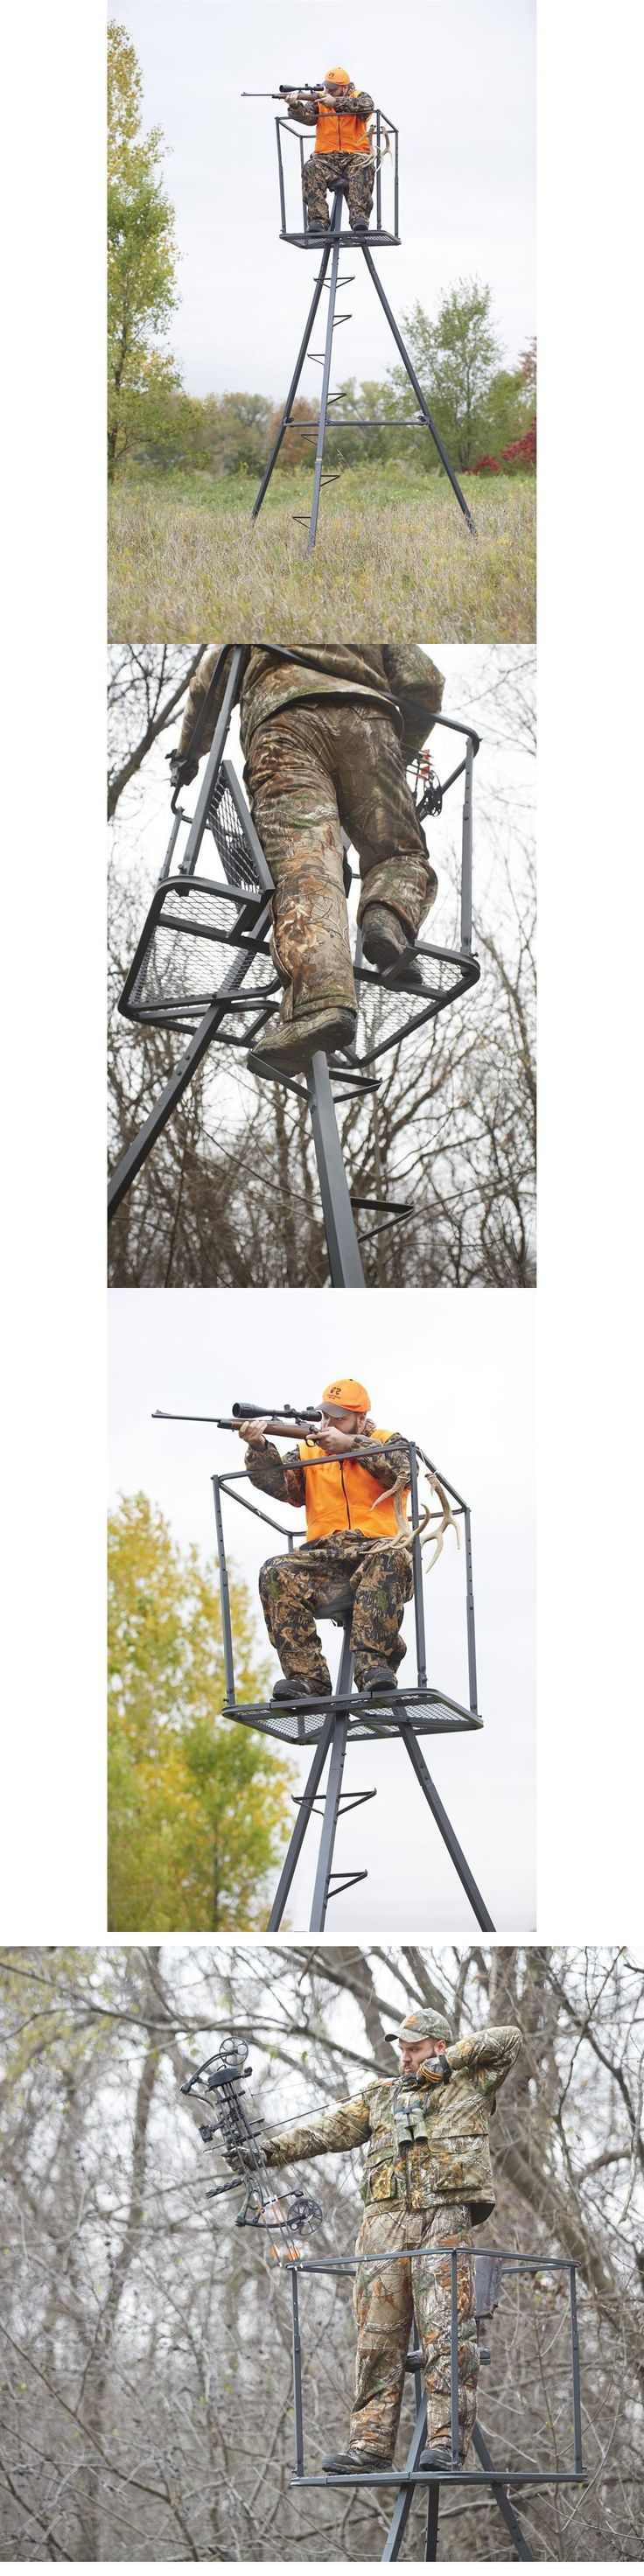 Tree Stands 52508: Deer Stand 13 Ft Seat Tripod Hunting Big Game Hunter Ladder Shooting Tree Blind BUY IT NOW ONLY: $216.79